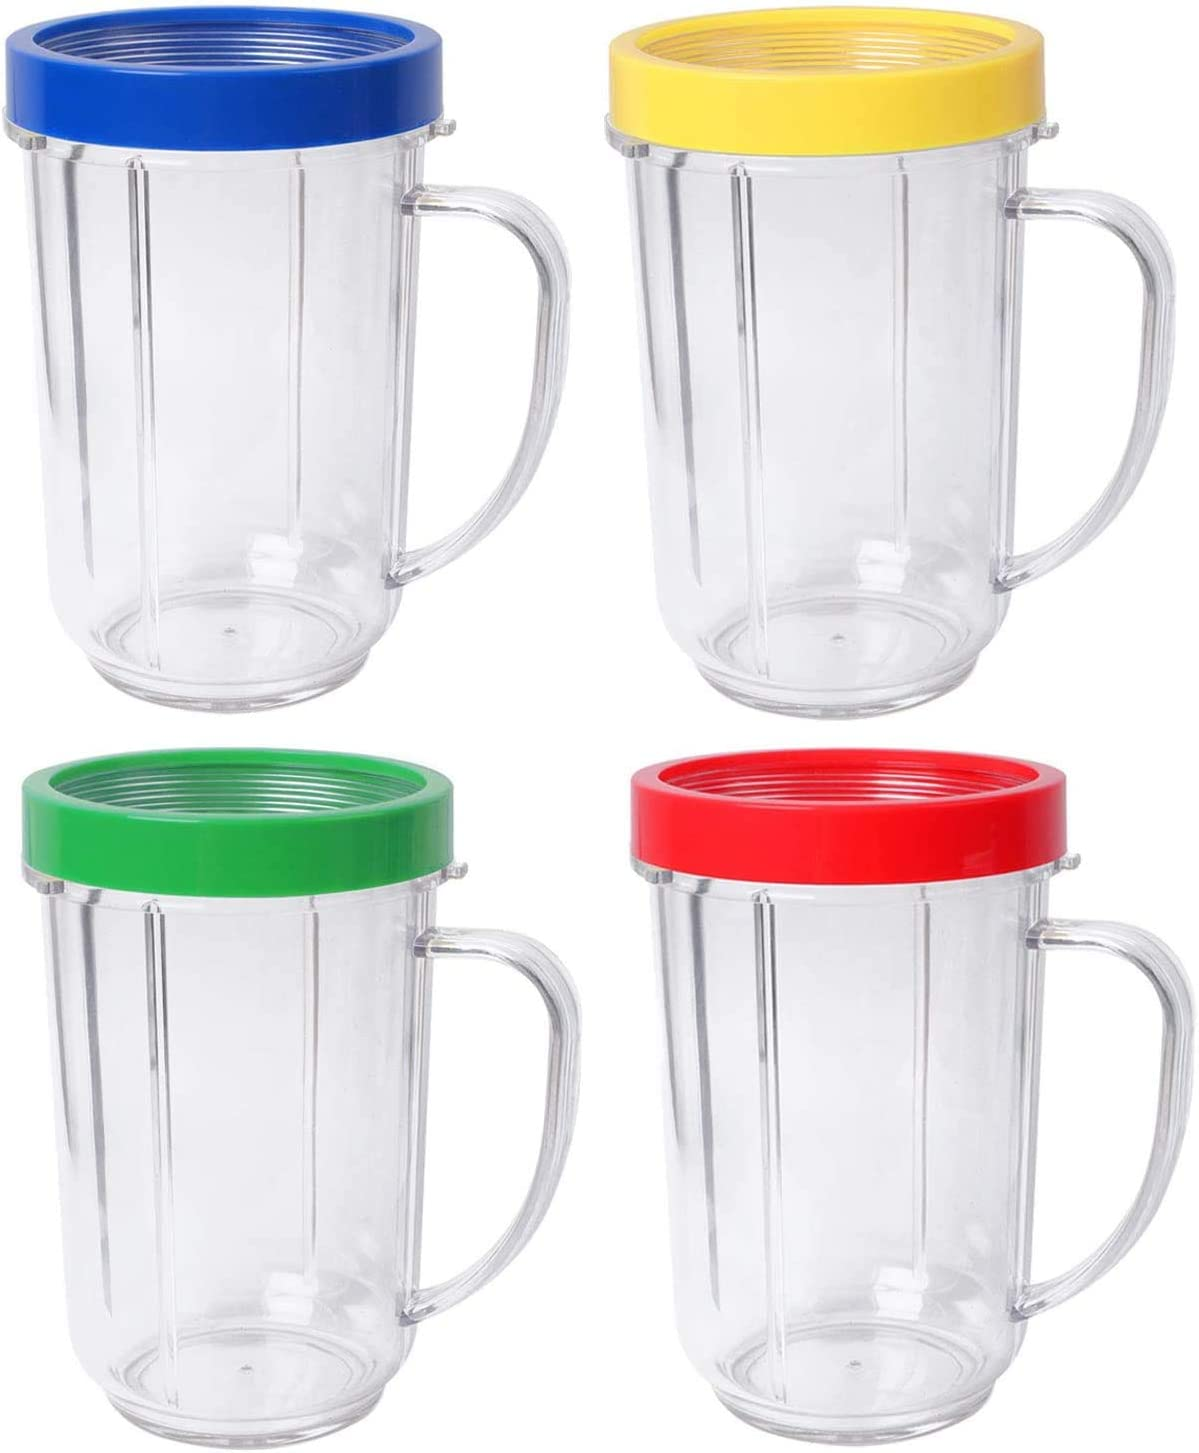 16oz Bullet Cups Compatible with Original Ma-gic Bu-llet Blender Juicer 250W MB-1001 Party Cups Mugs By Wadoy with Colored Lip Rings(Pack of 4)